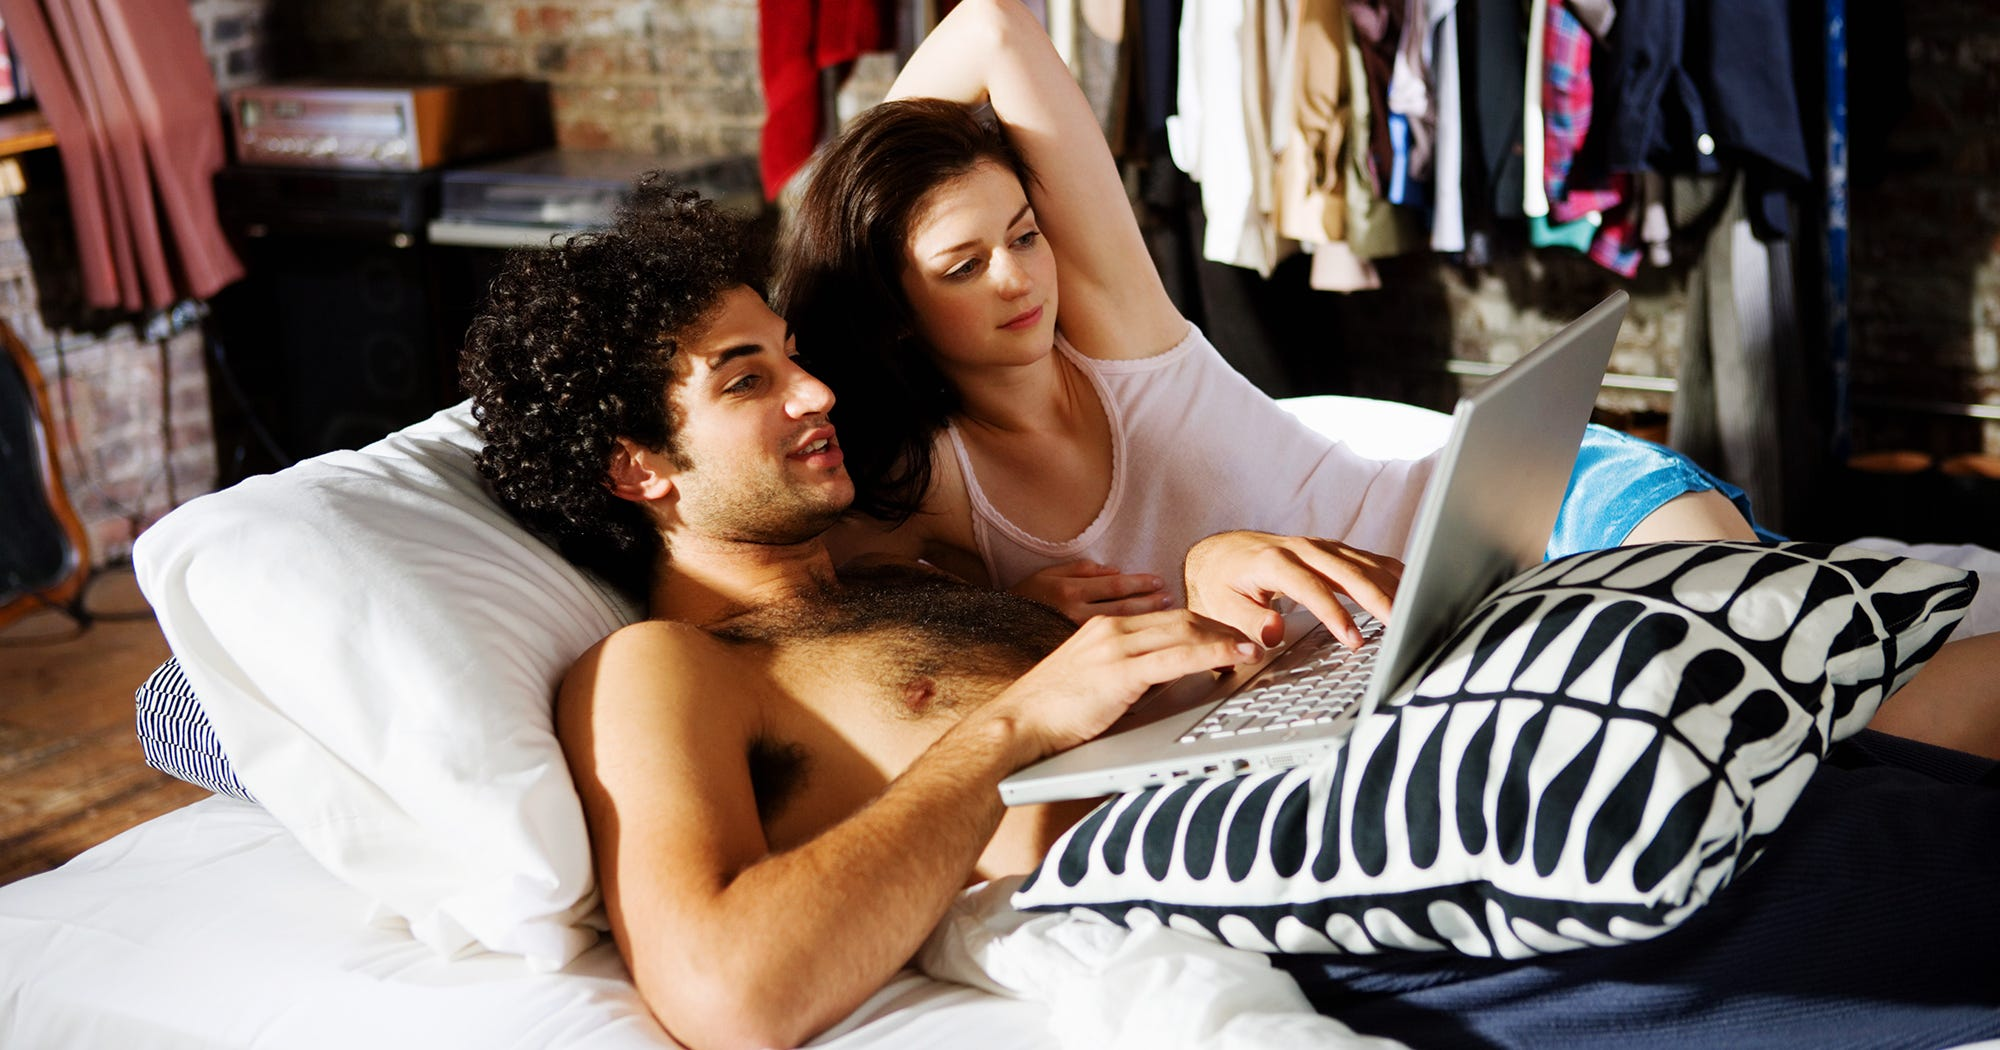 Here's Where To Find The Best Porn For You On The Web